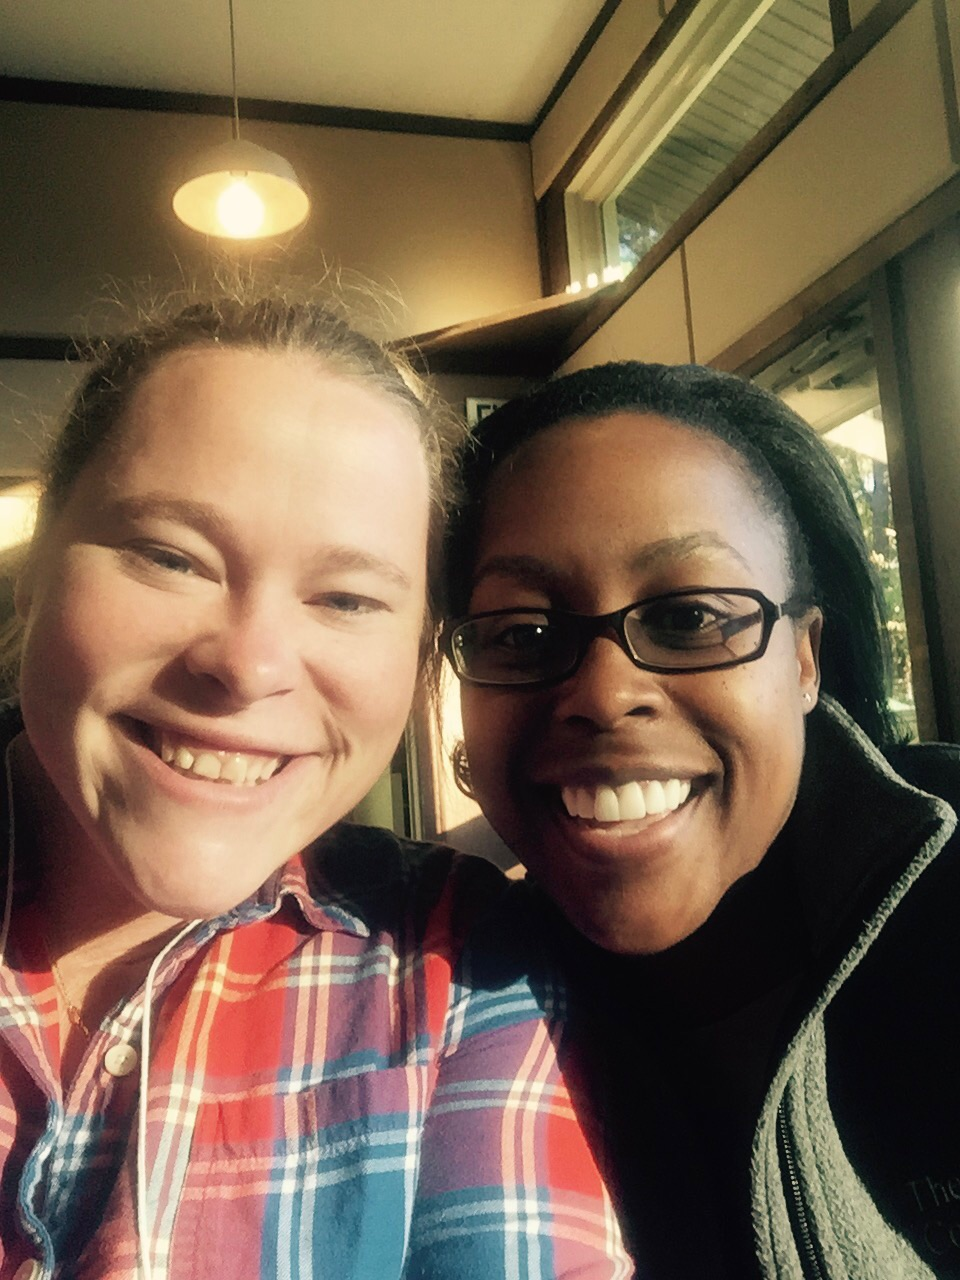 Jacqueline Gray Miller, Marketing Manager at The Nature Conservancy and I are all smiles during lunch in the dining hall!